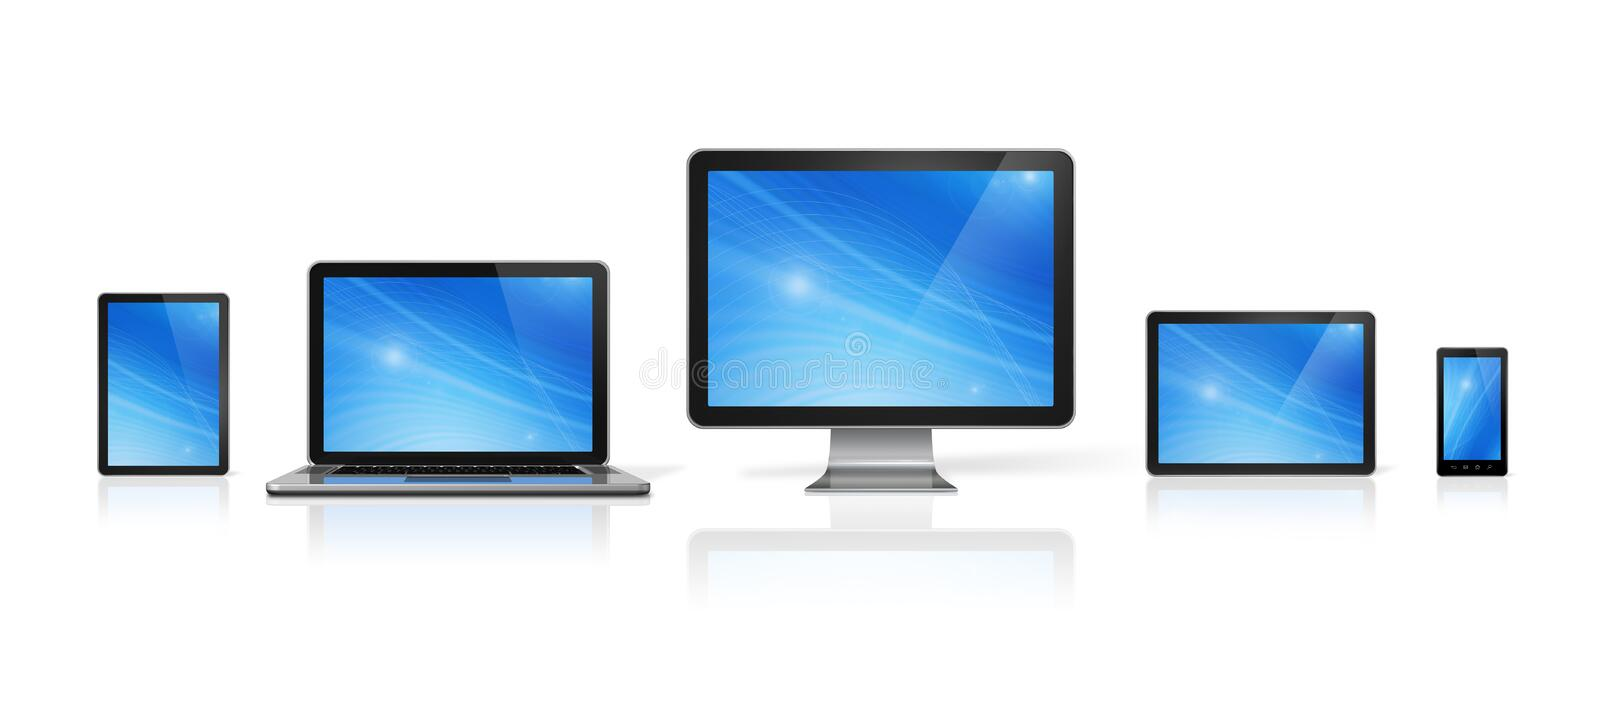 Computer, laptop, mobile phone and digital tablet pc. 3D computer, laptop, mobile phone and digital tablet pc - on white with clipping path royalty free illustration